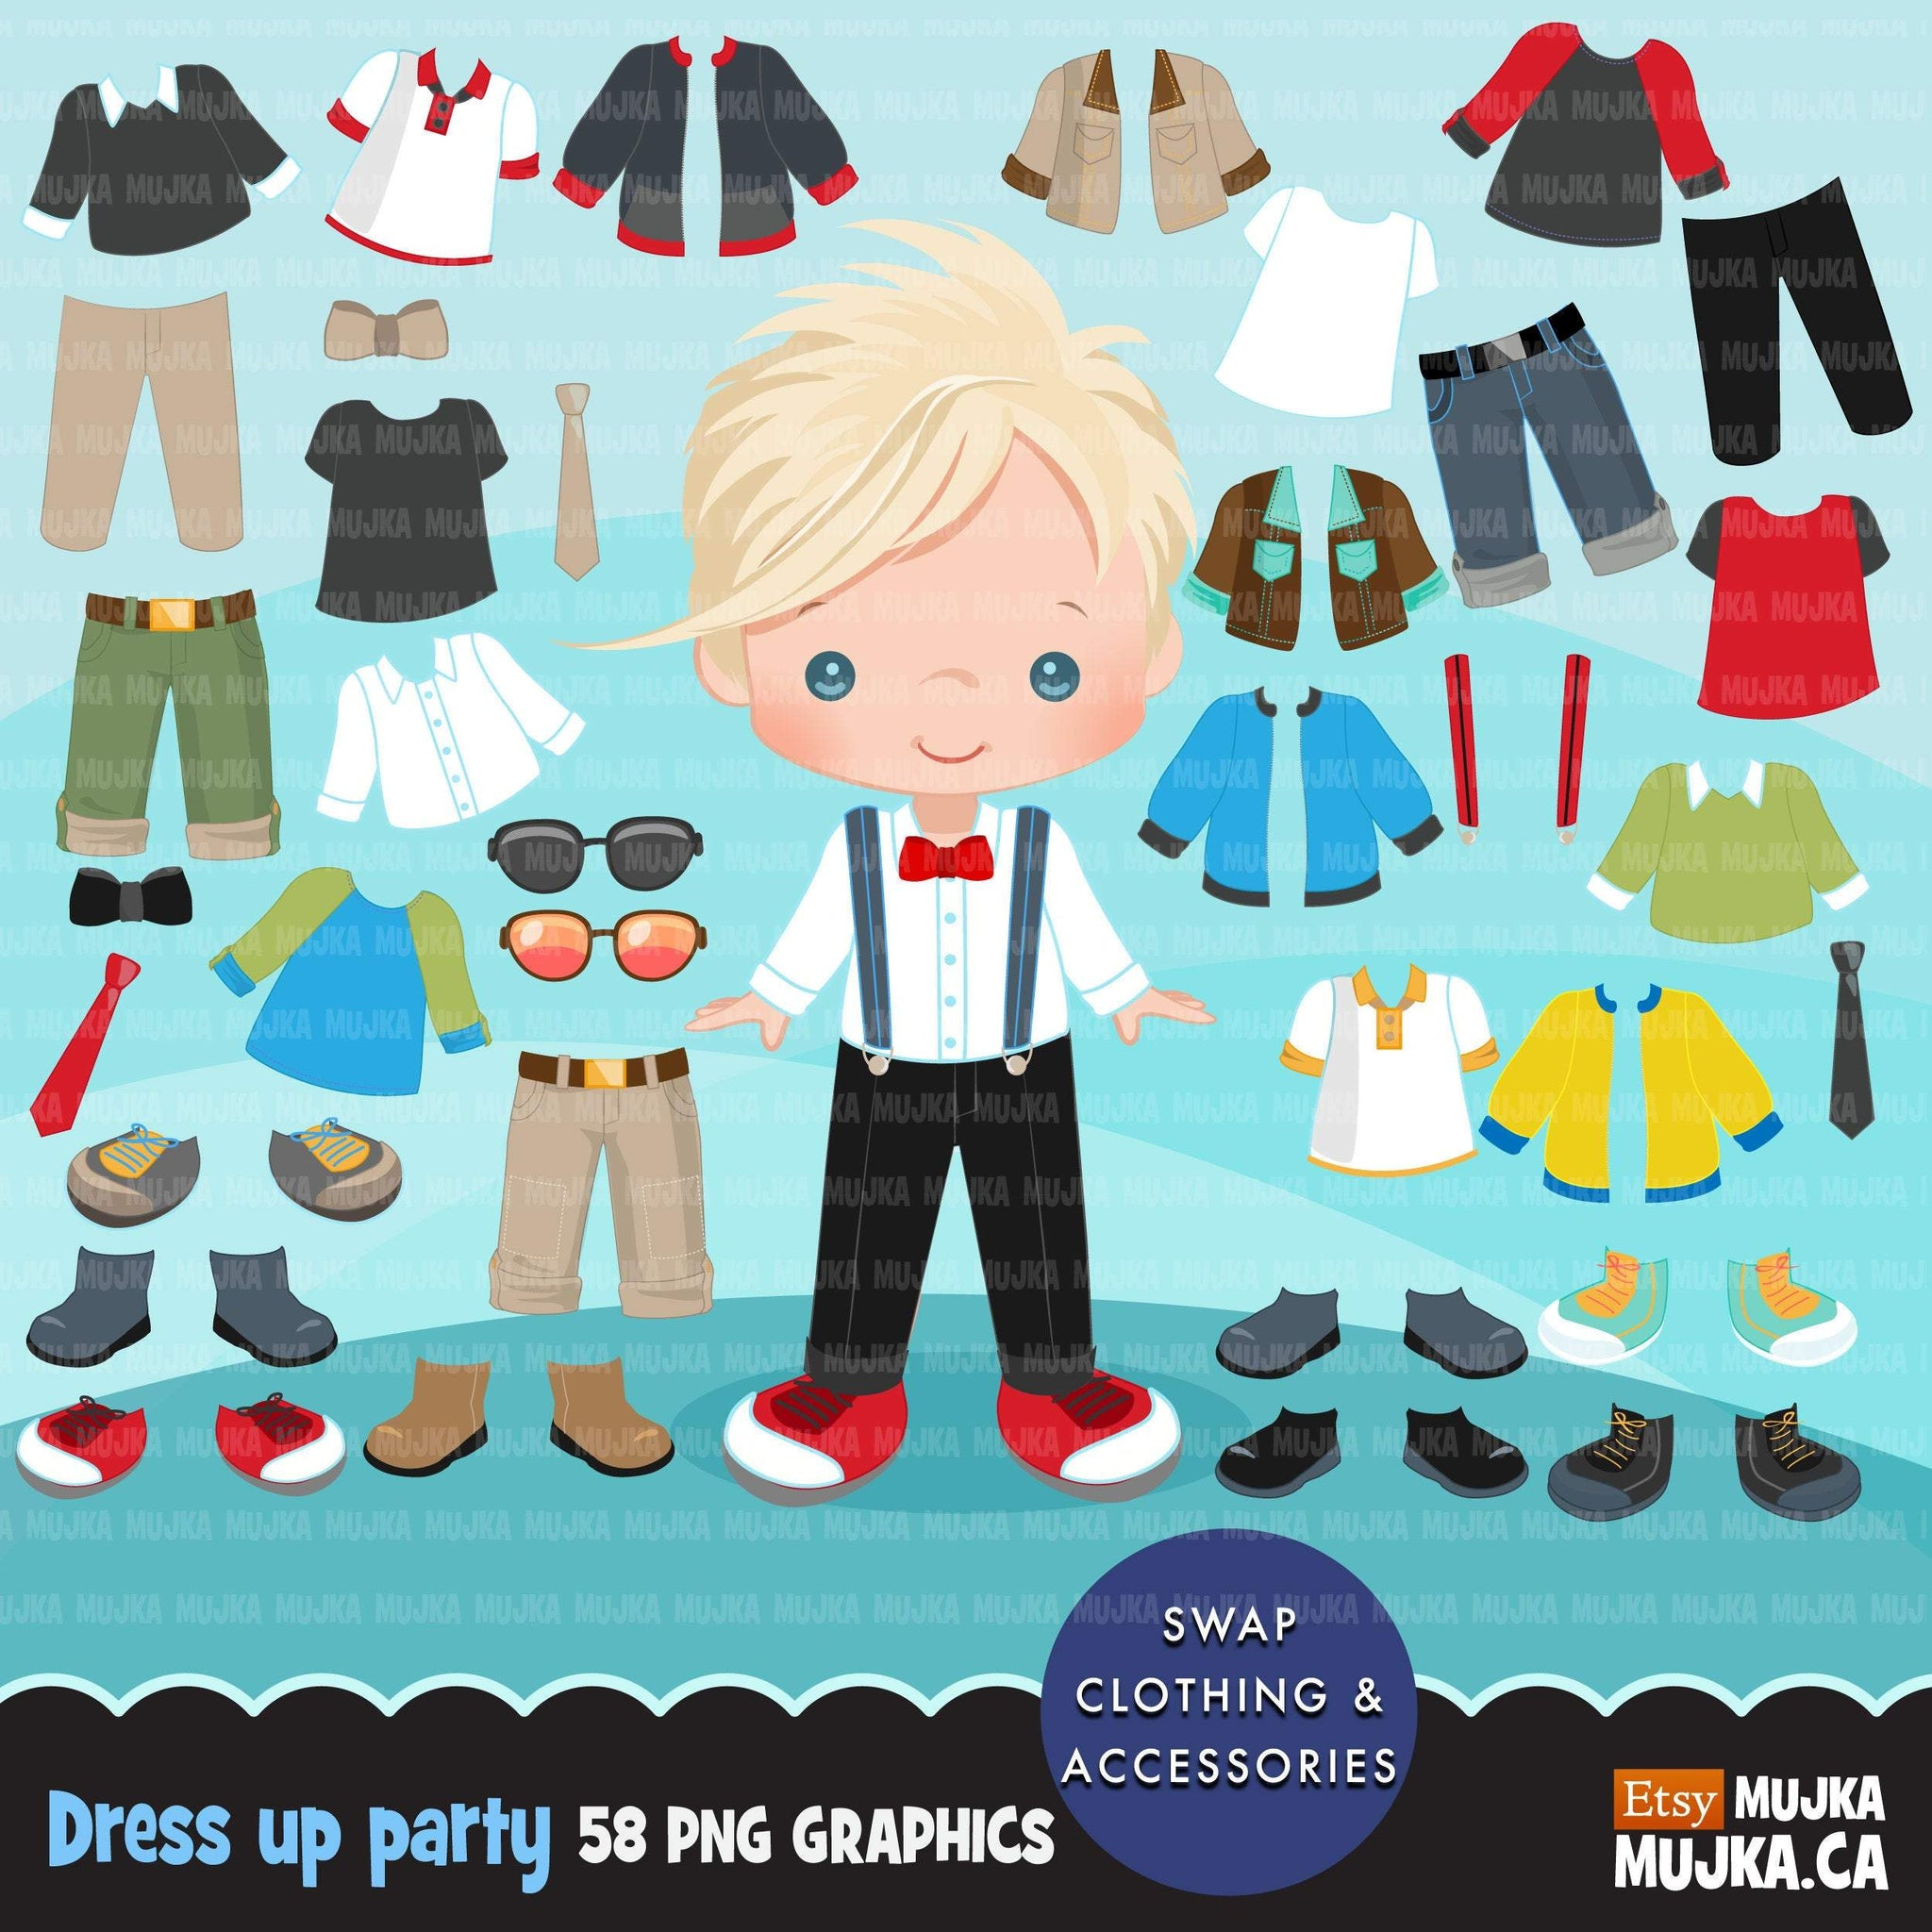 Paper doll clipart, Little Boys Dressing Party Graphics. Cute Characters, spring outfits